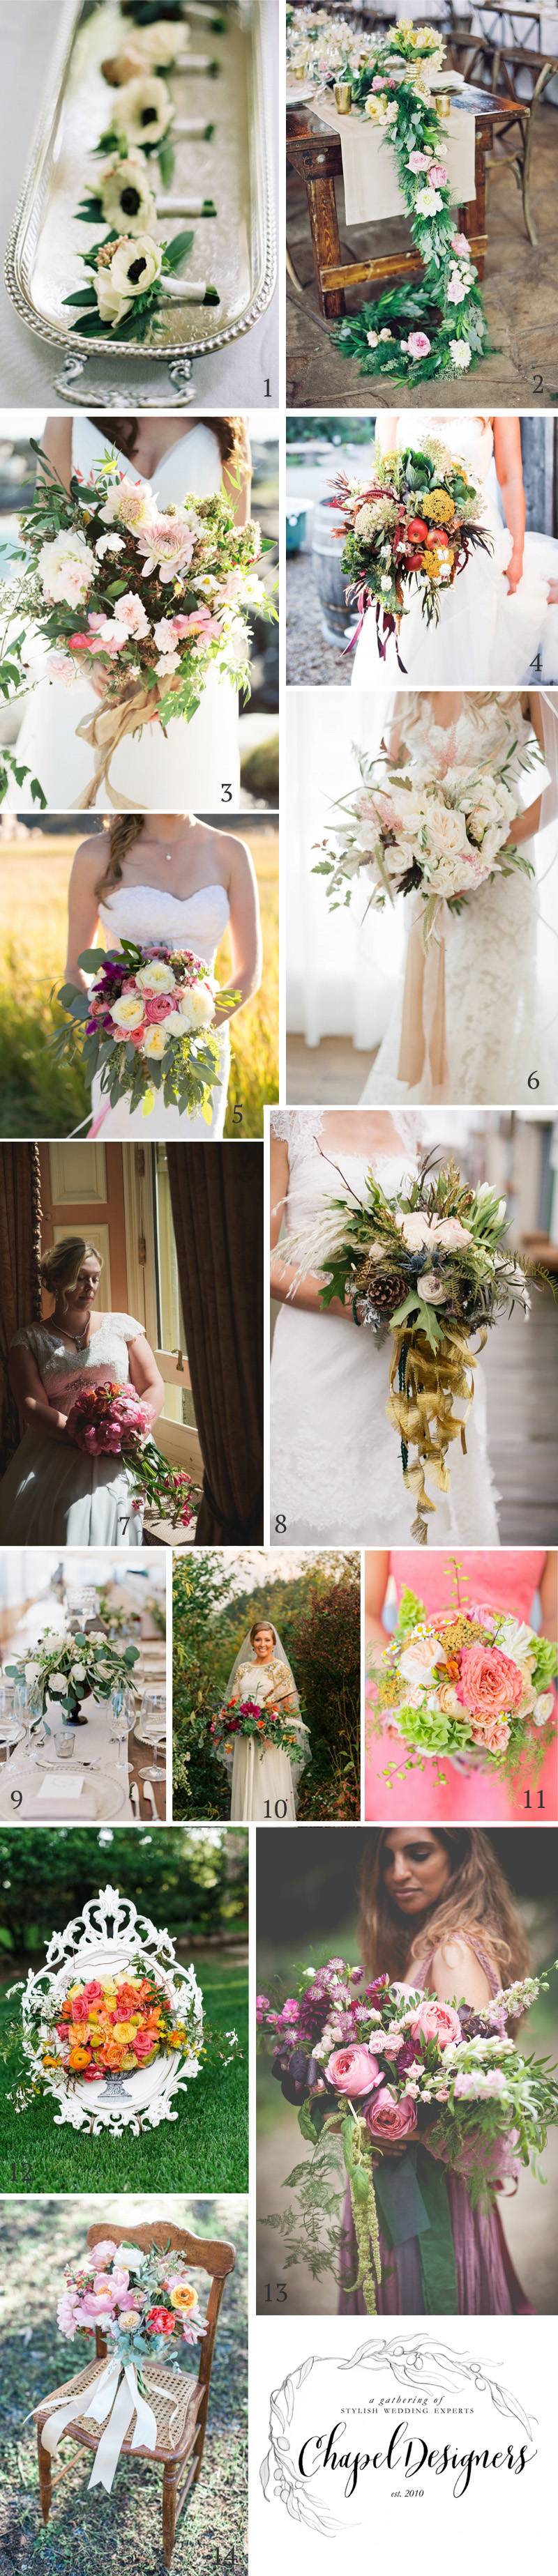 chapel designers - a collection of stylish wedding florists - @kmorganflowers UK Chapel Designer